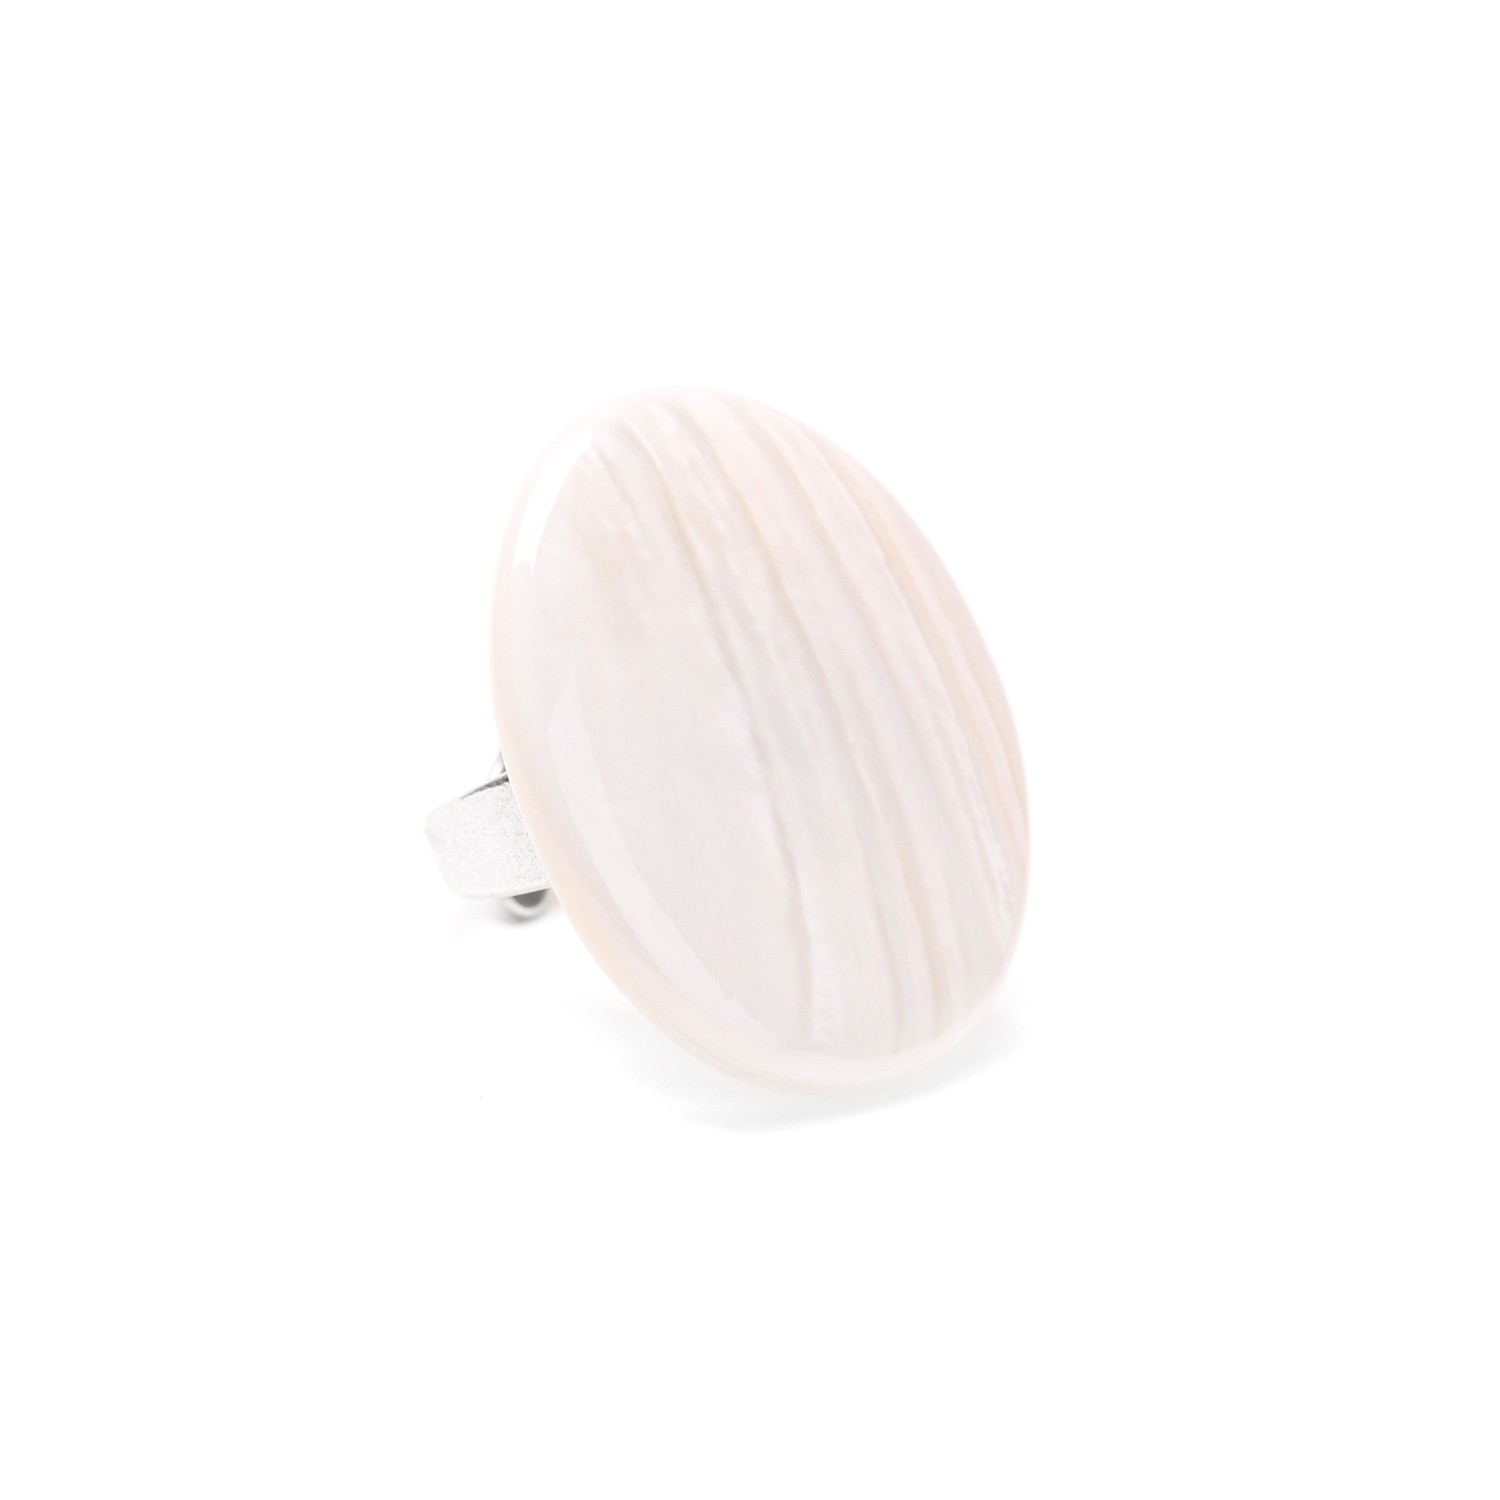 SAINT MALO pink shell ring